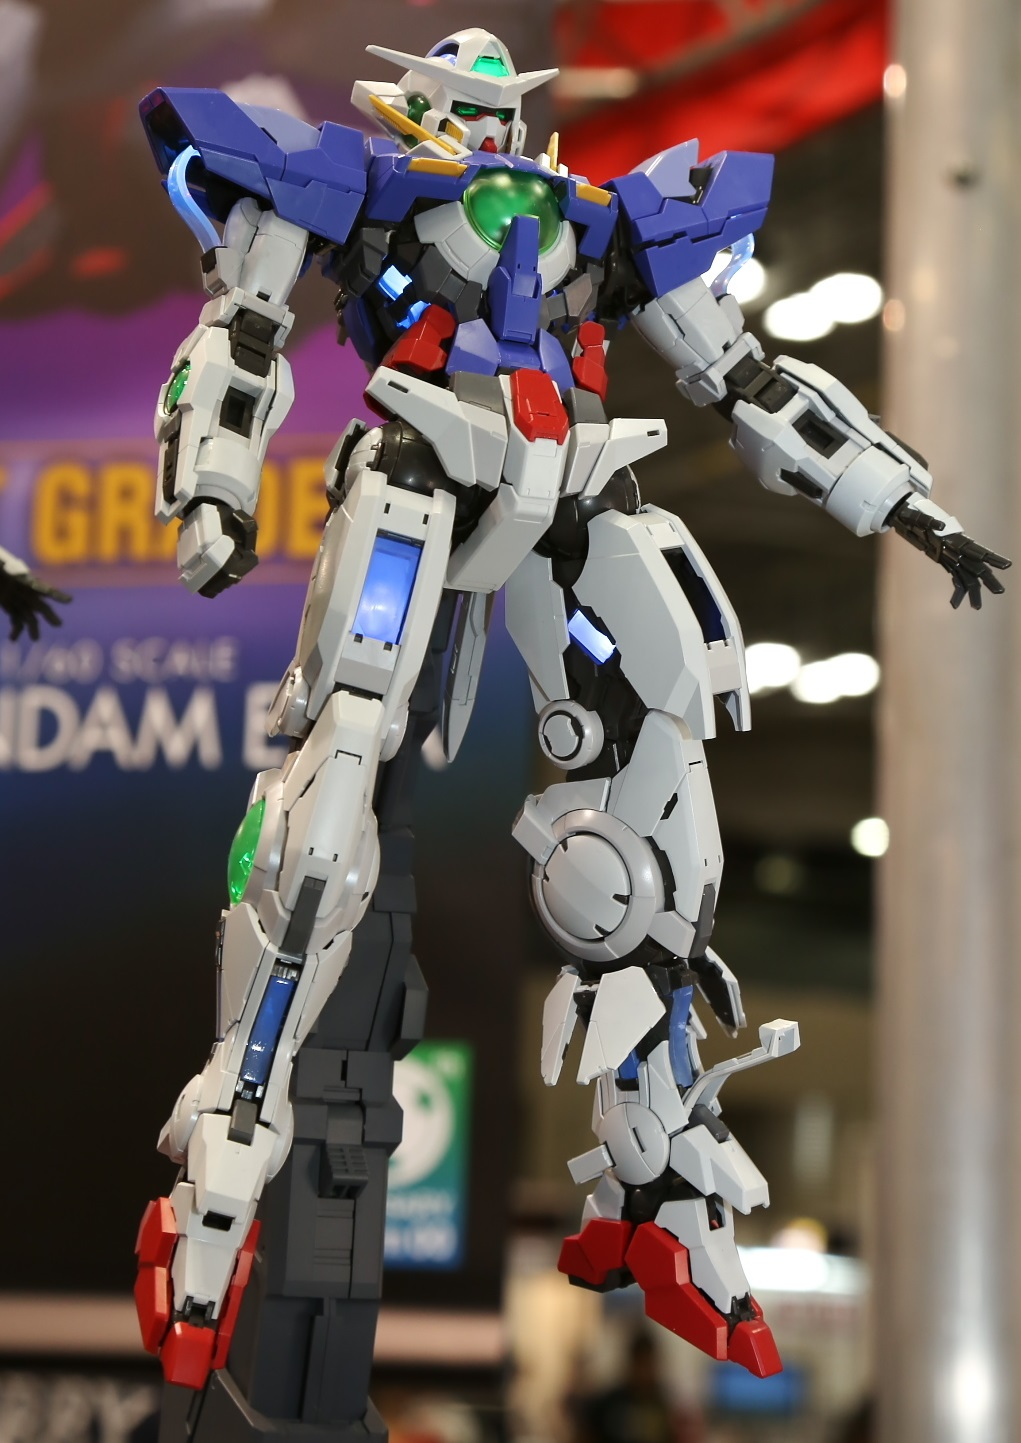 62b045009ac PG ガンダムエクシア (LIGHTING MODEL) Release date  2 December 2017 – Price  34